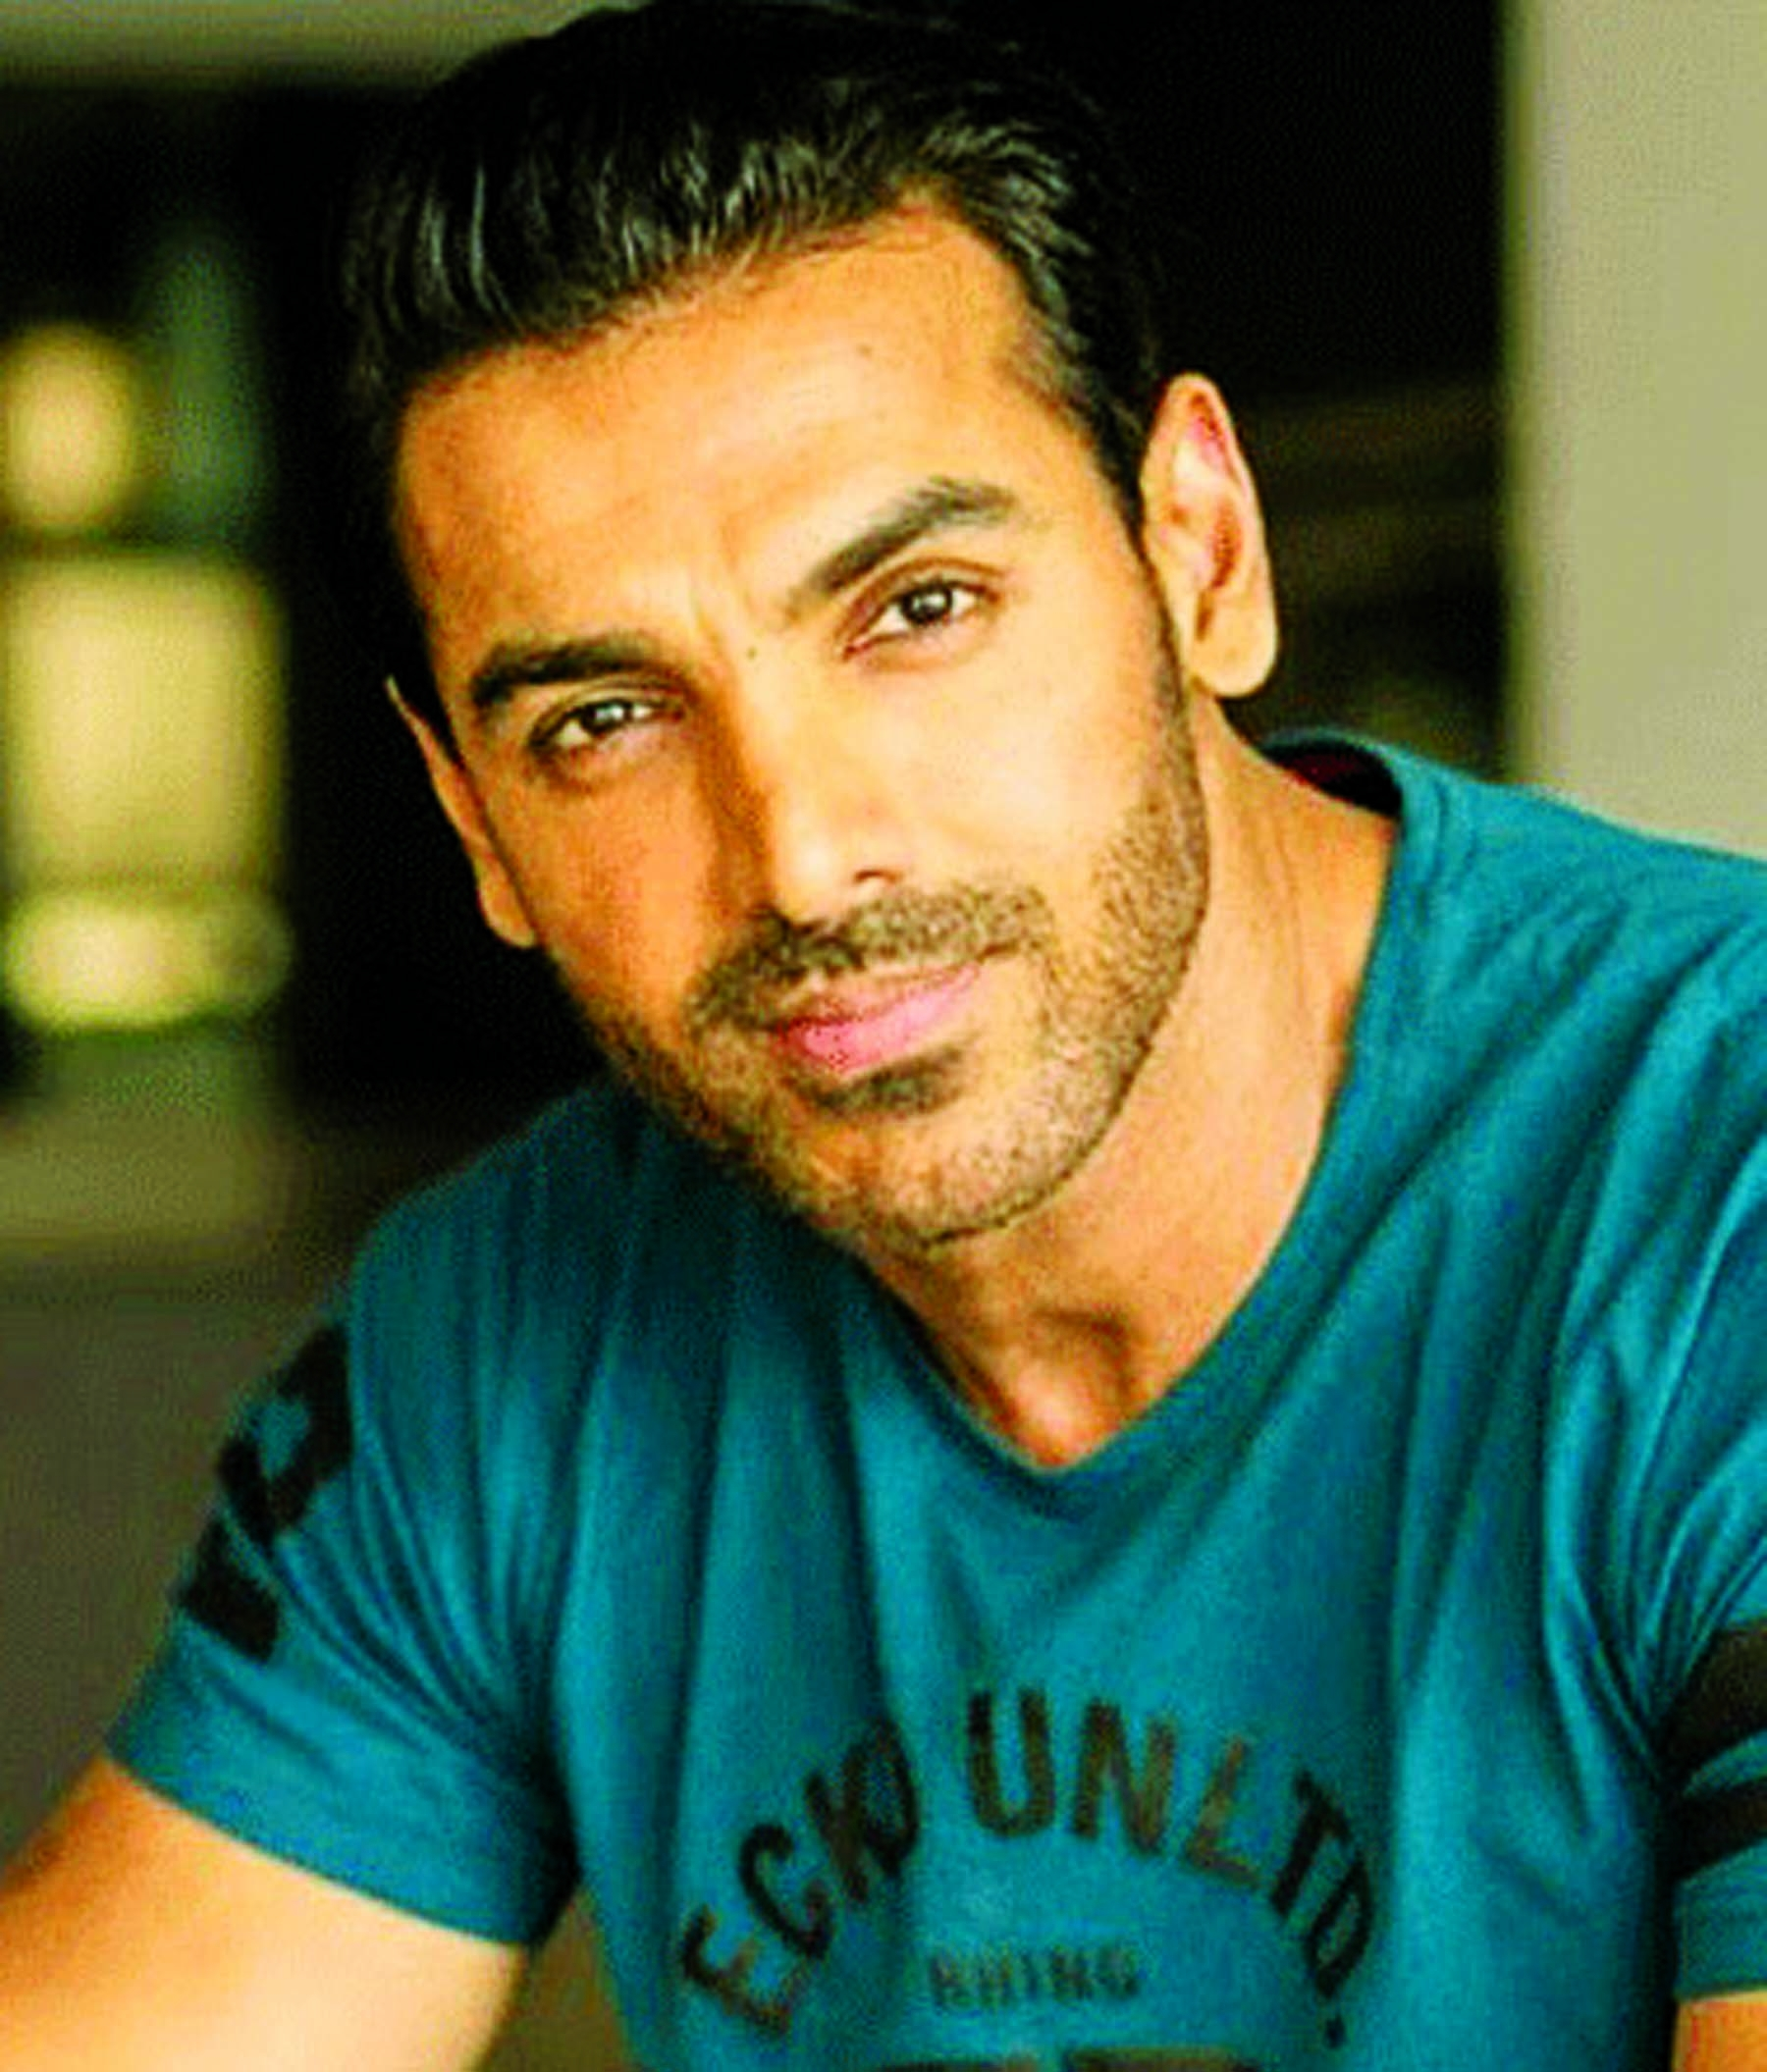 John Abraham invites people for a noble cause